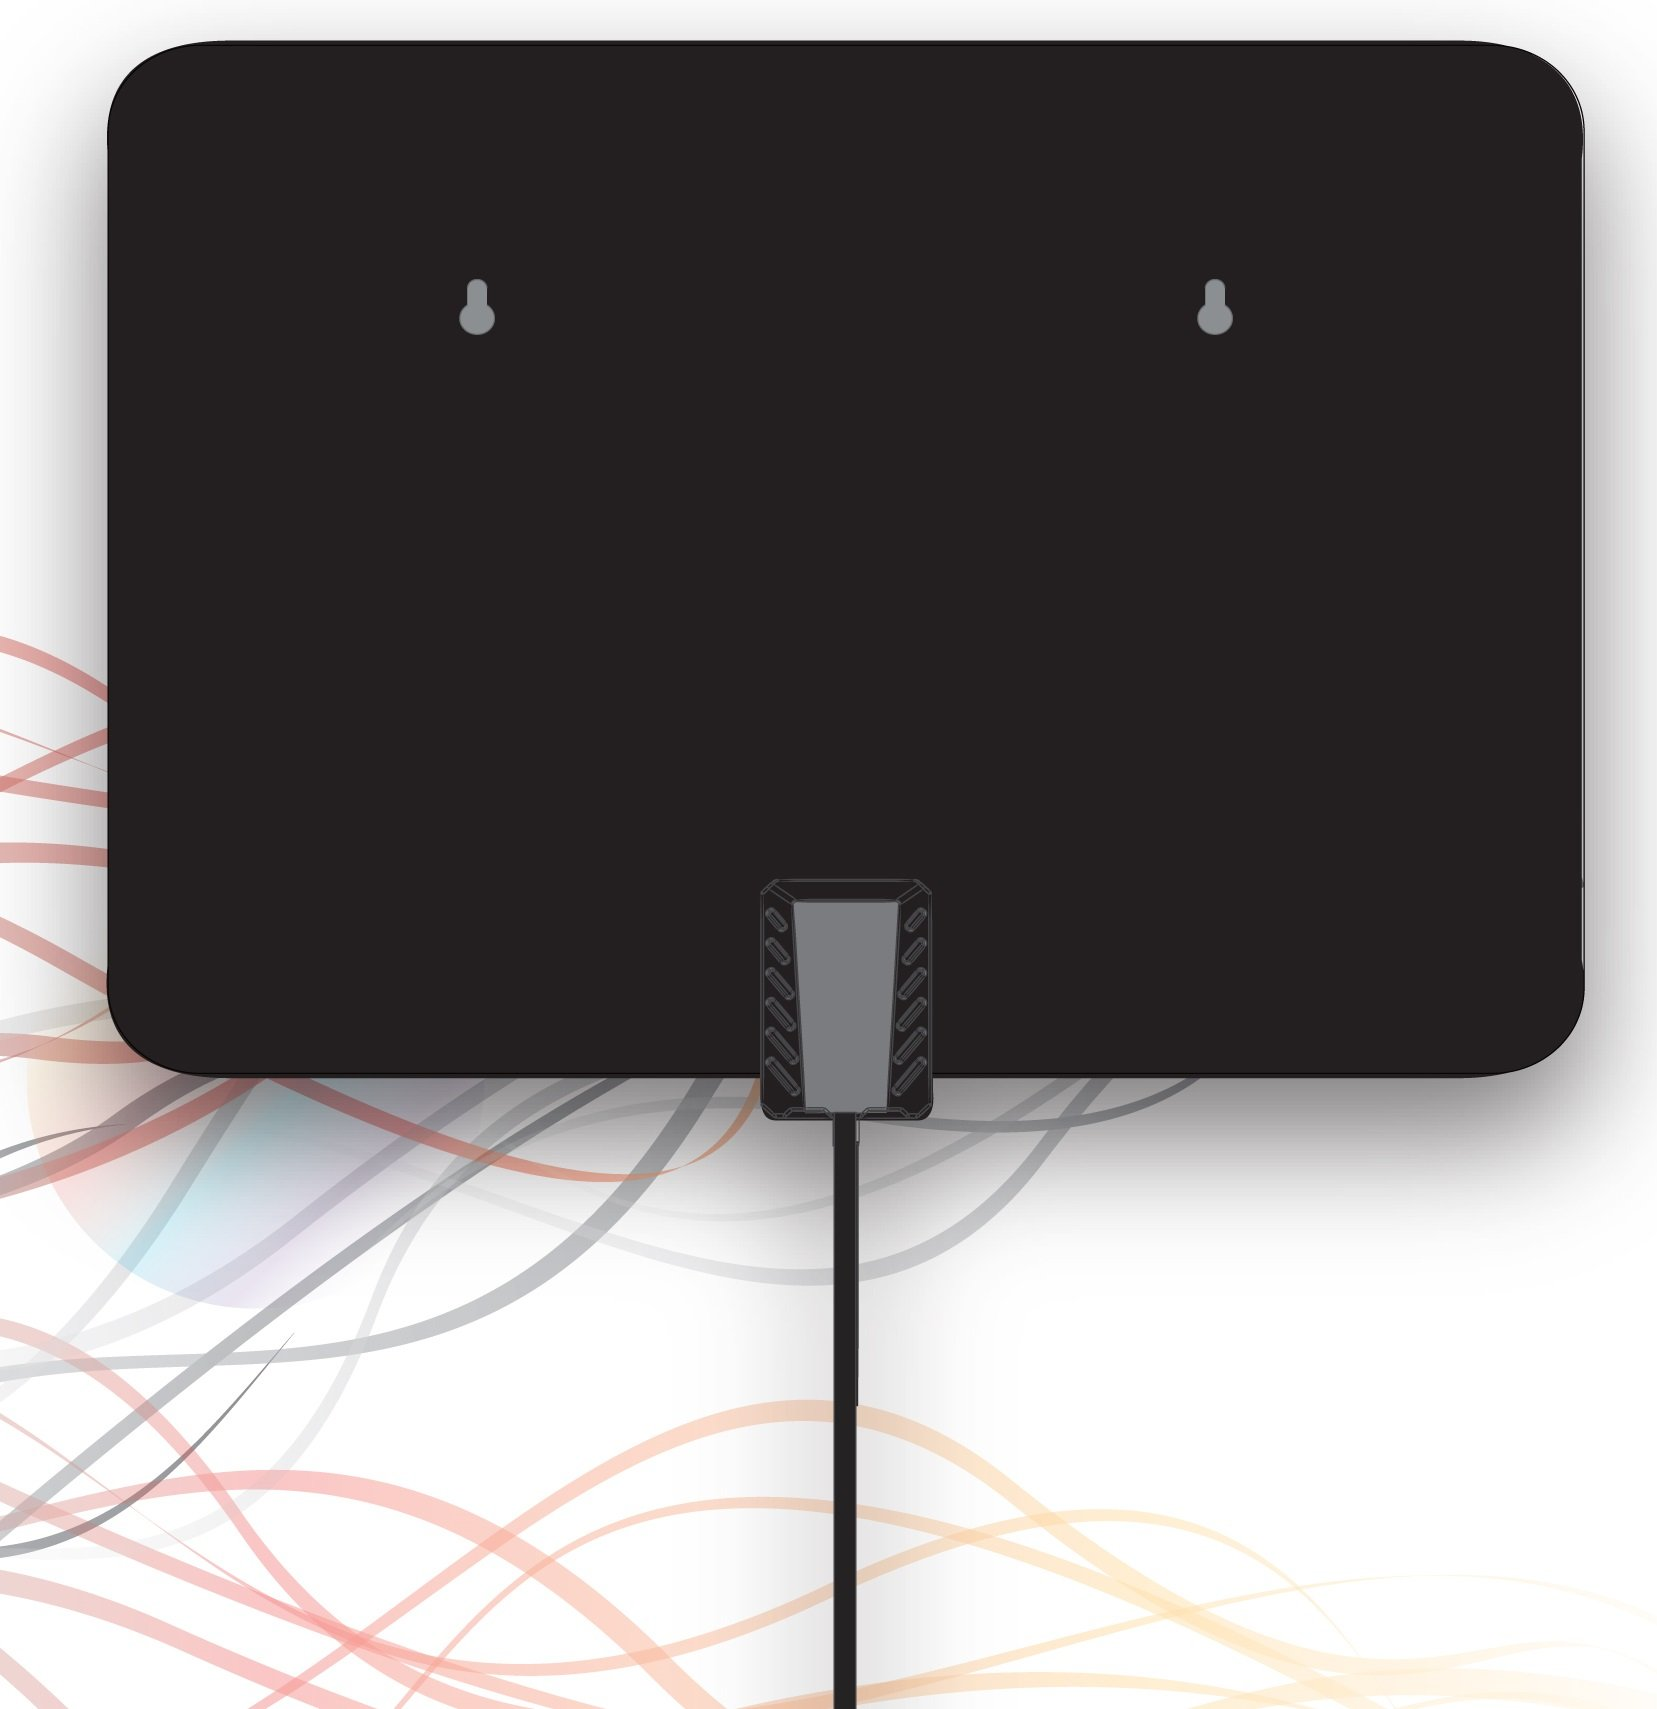 NEW Flat Indoor HDTV Antenna 25 Miles Range - Super Thin HDTV Indoor Antenna 5500A - 6 ft Coax Cable, Power By ProHT